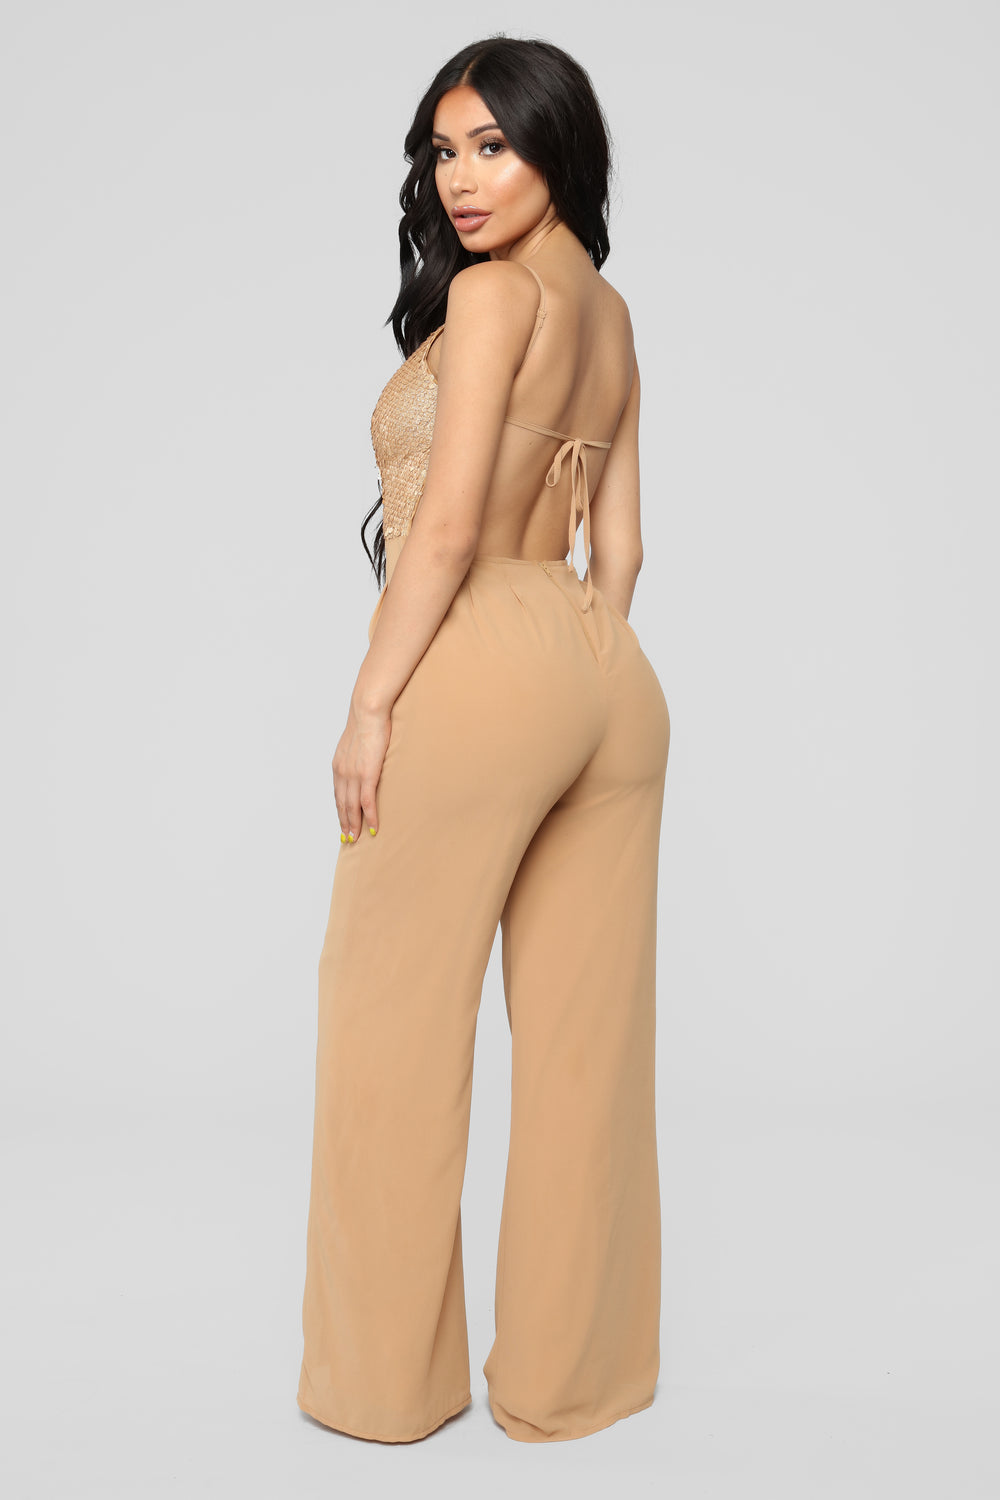 Let's Groove Tonight Sequin Jumpsuit - Gold